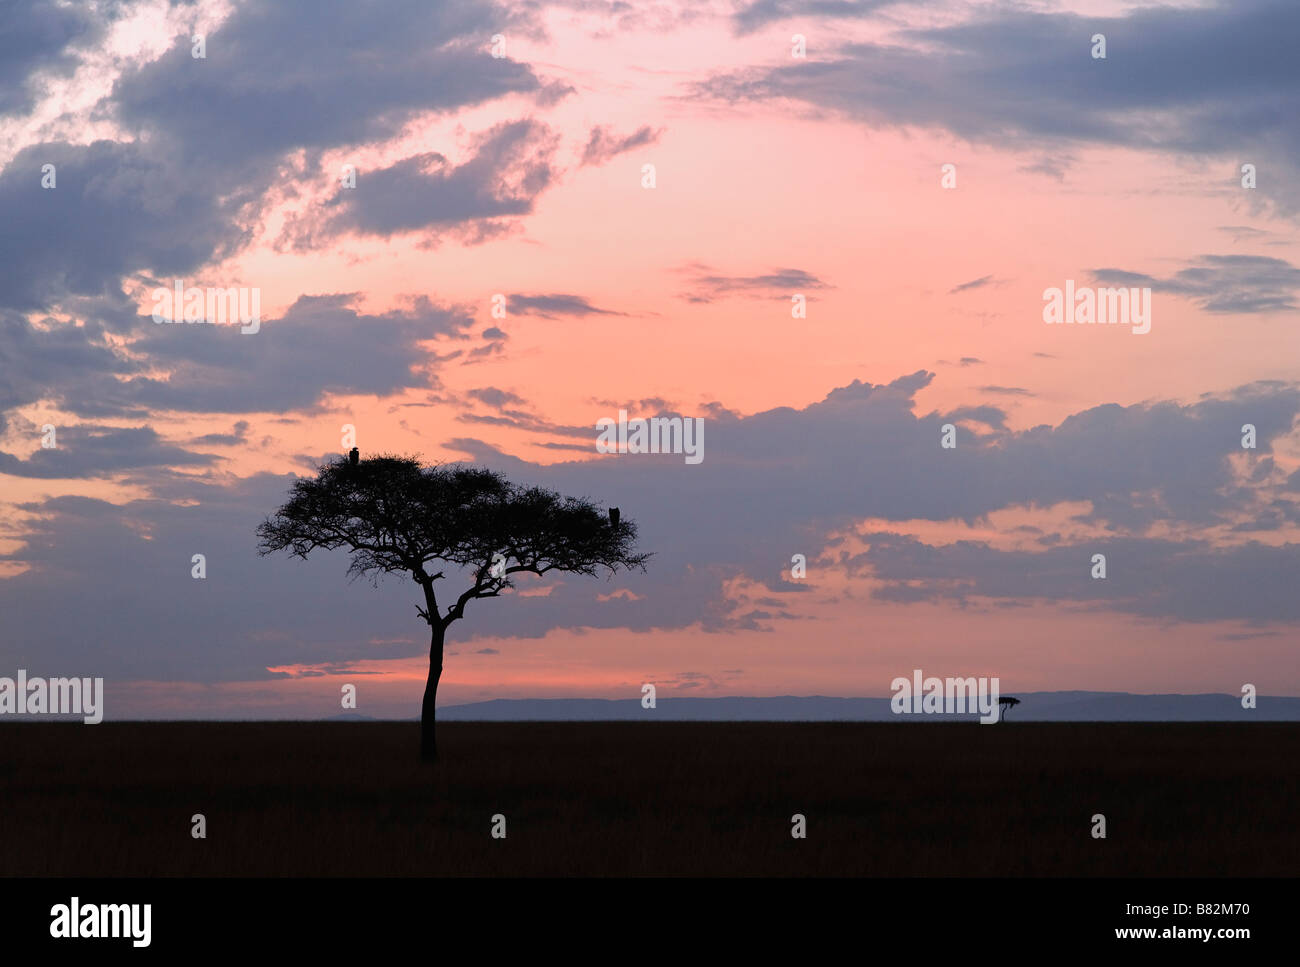 Beautiful sunrise over the vast Serengeti plains in the Masai Mara National Reserve, Kenya. - Stock Image